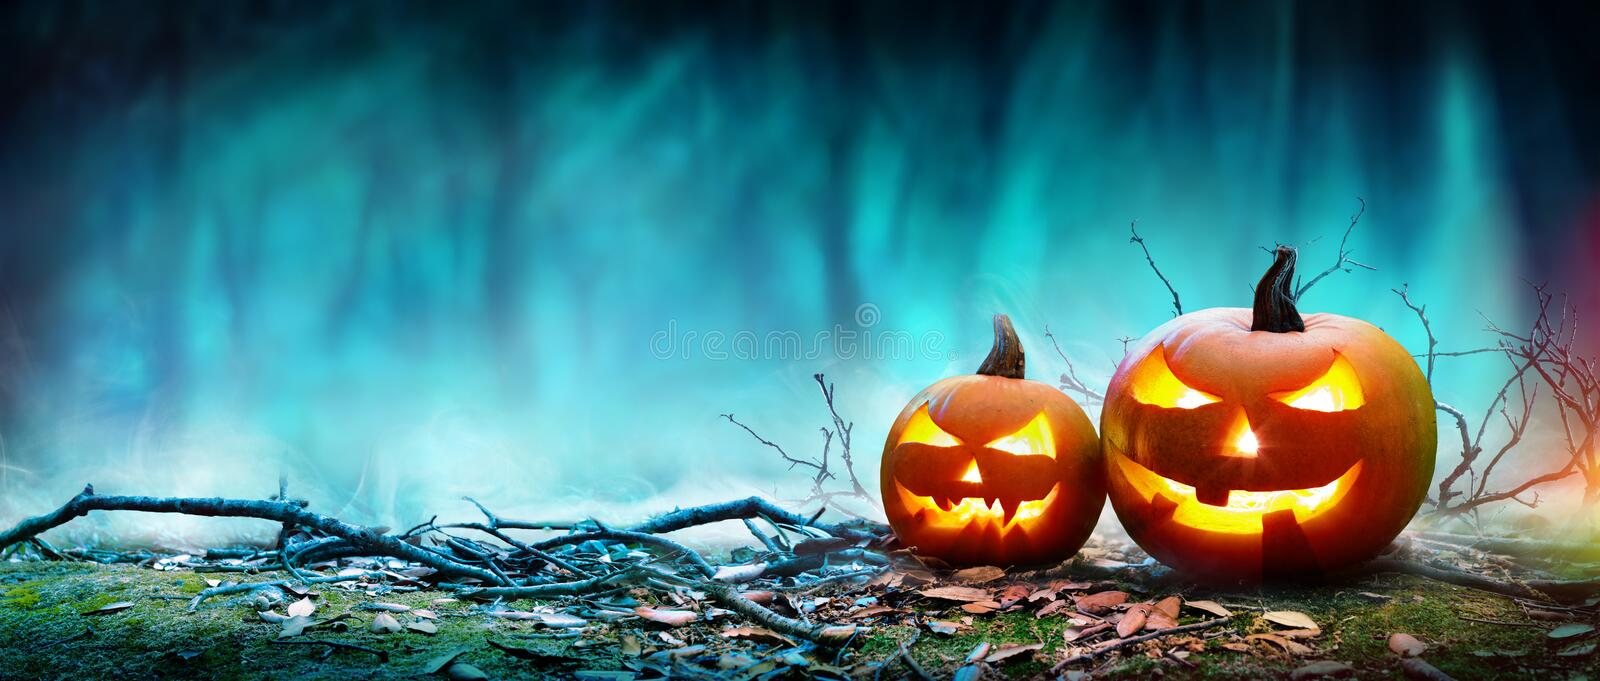 Jack O' Lanterns Glowing At Moonlight In The Spooky Night royalty free stock photo